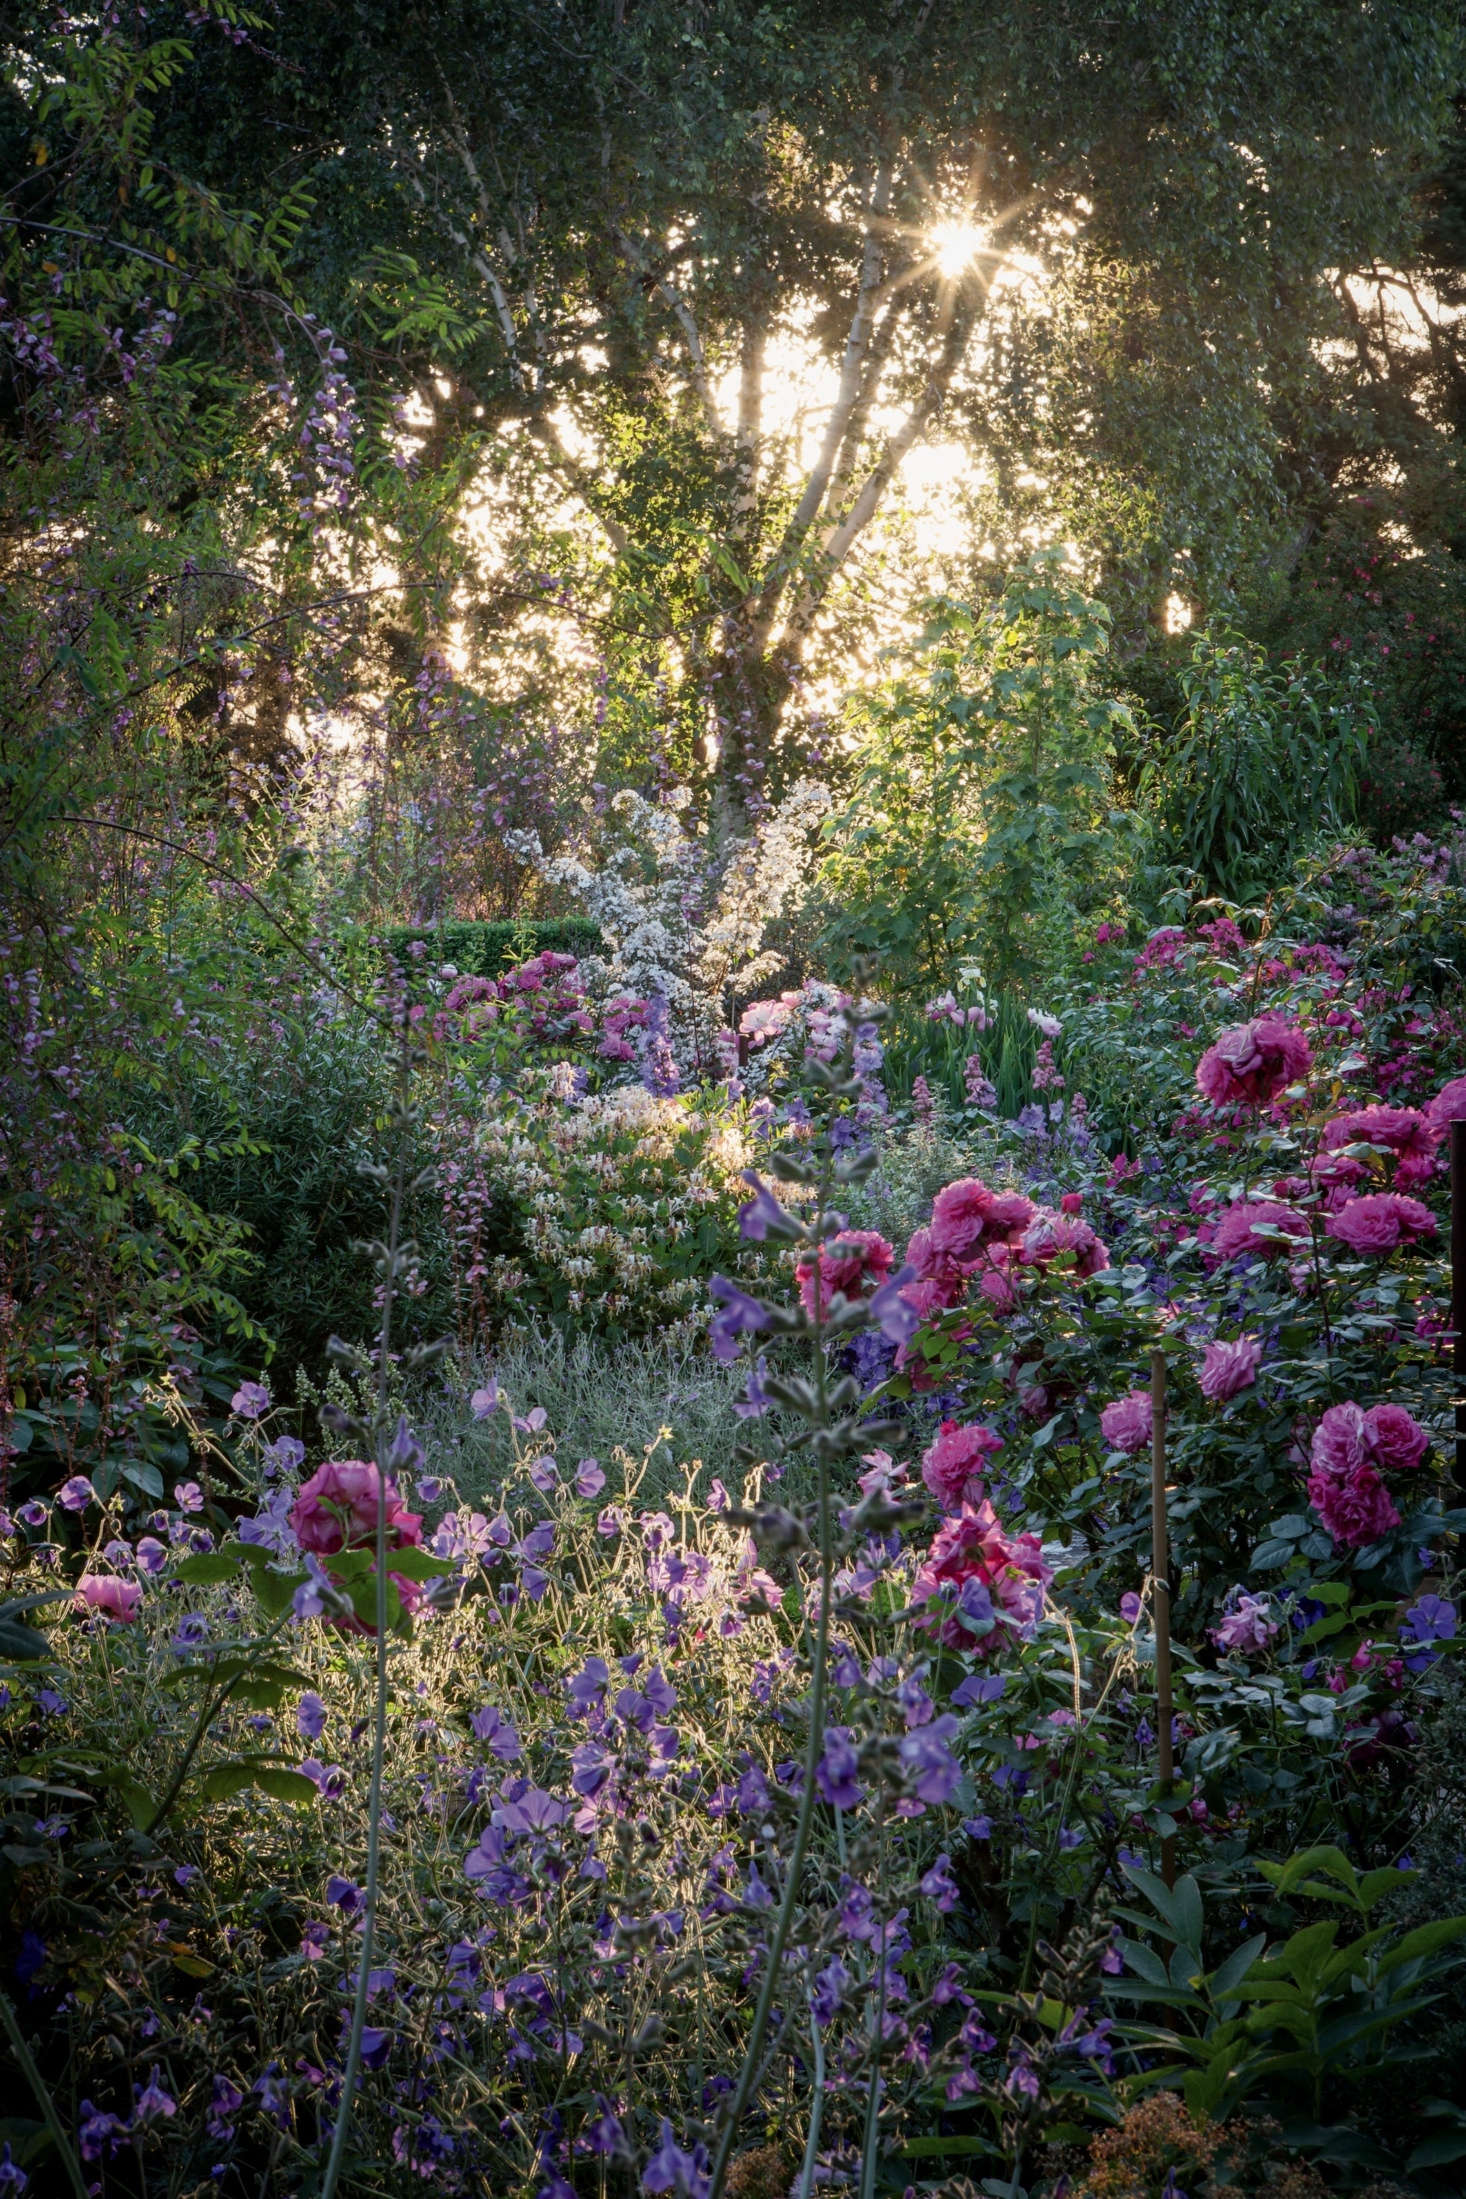 Pictured is the pink Rosa 'Rita', Salvia candelabrum, Geranium robustum, and one of the garden's signature shrubs:Deutzia setchuenensis var. corymbiflora, introduced to the garden by Diany.